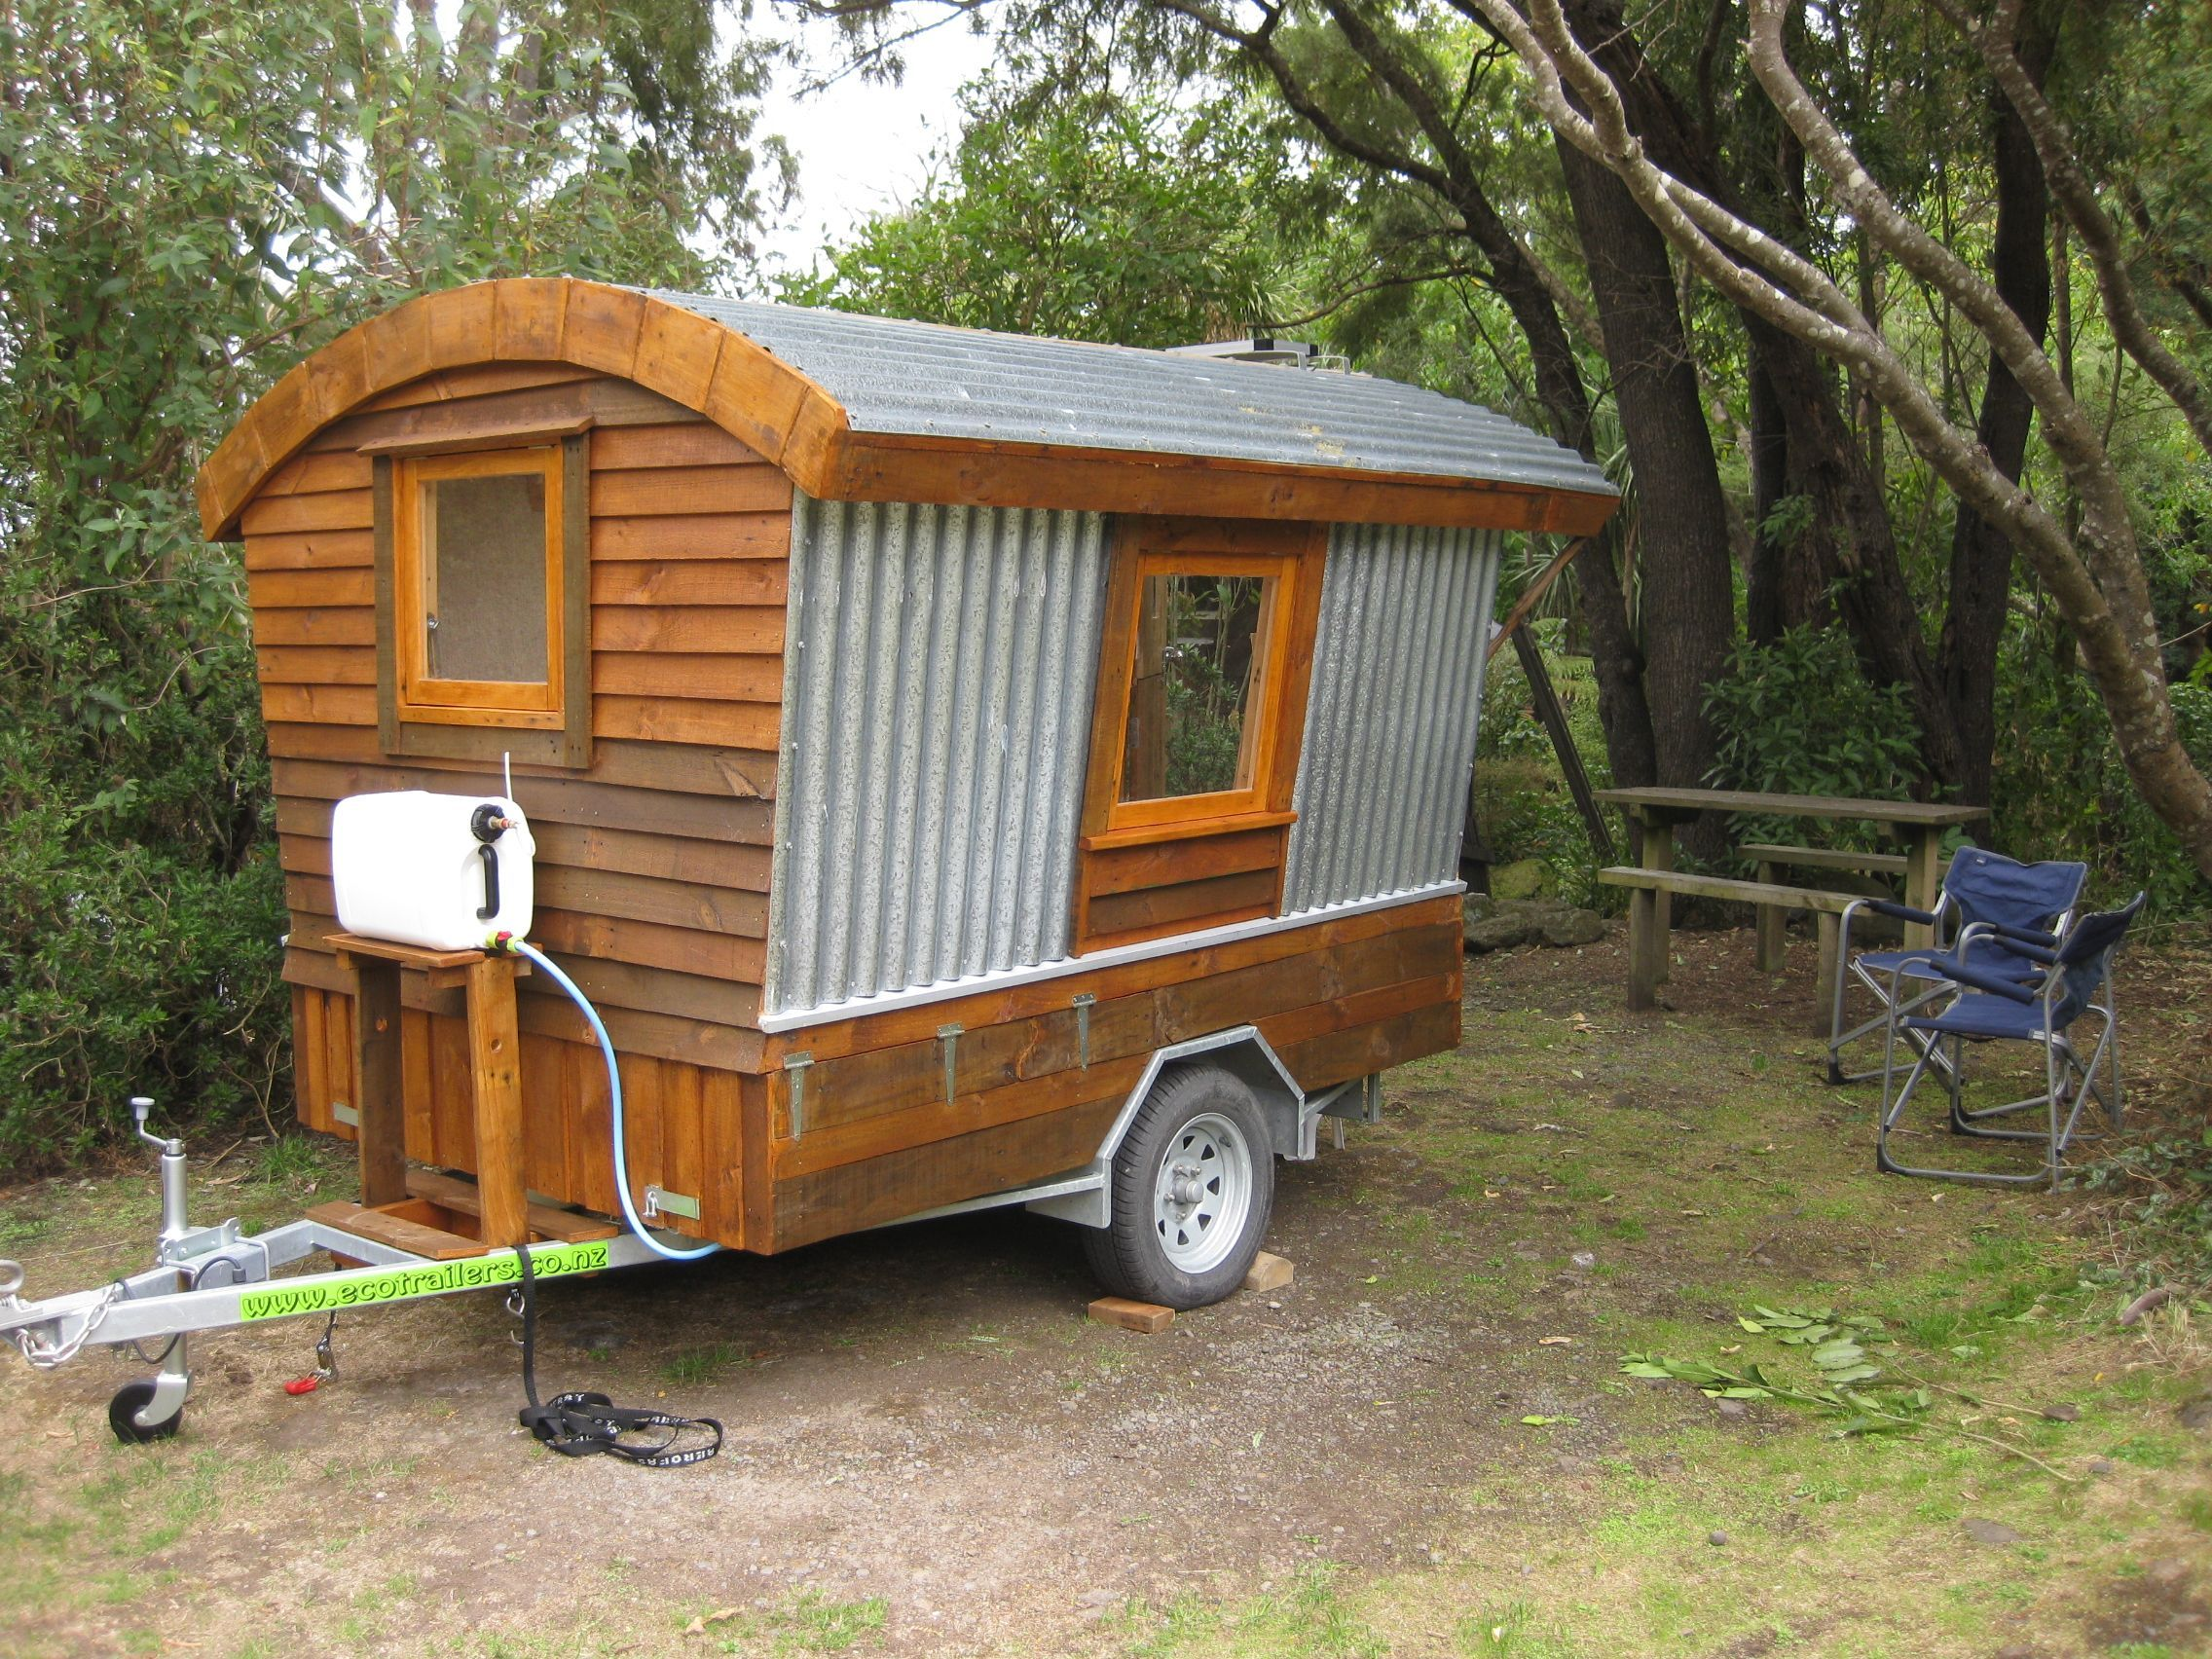 Polly An Ingenious SelfBuild Camper made from Salvaged